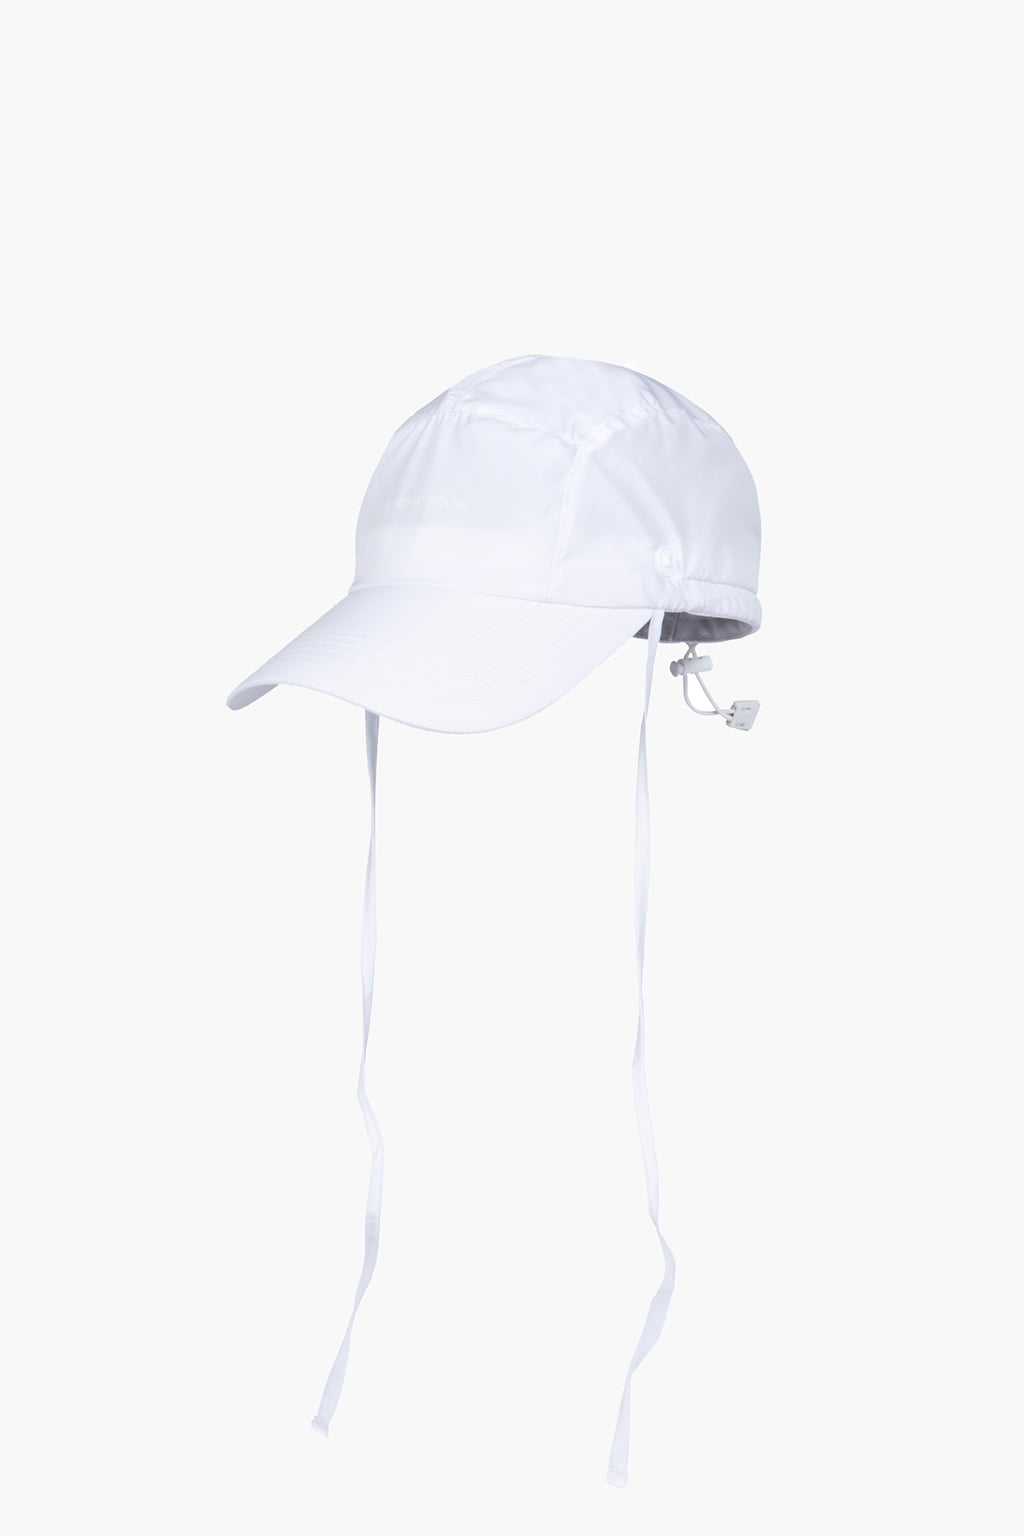 3-in-1 Desert Cap - white